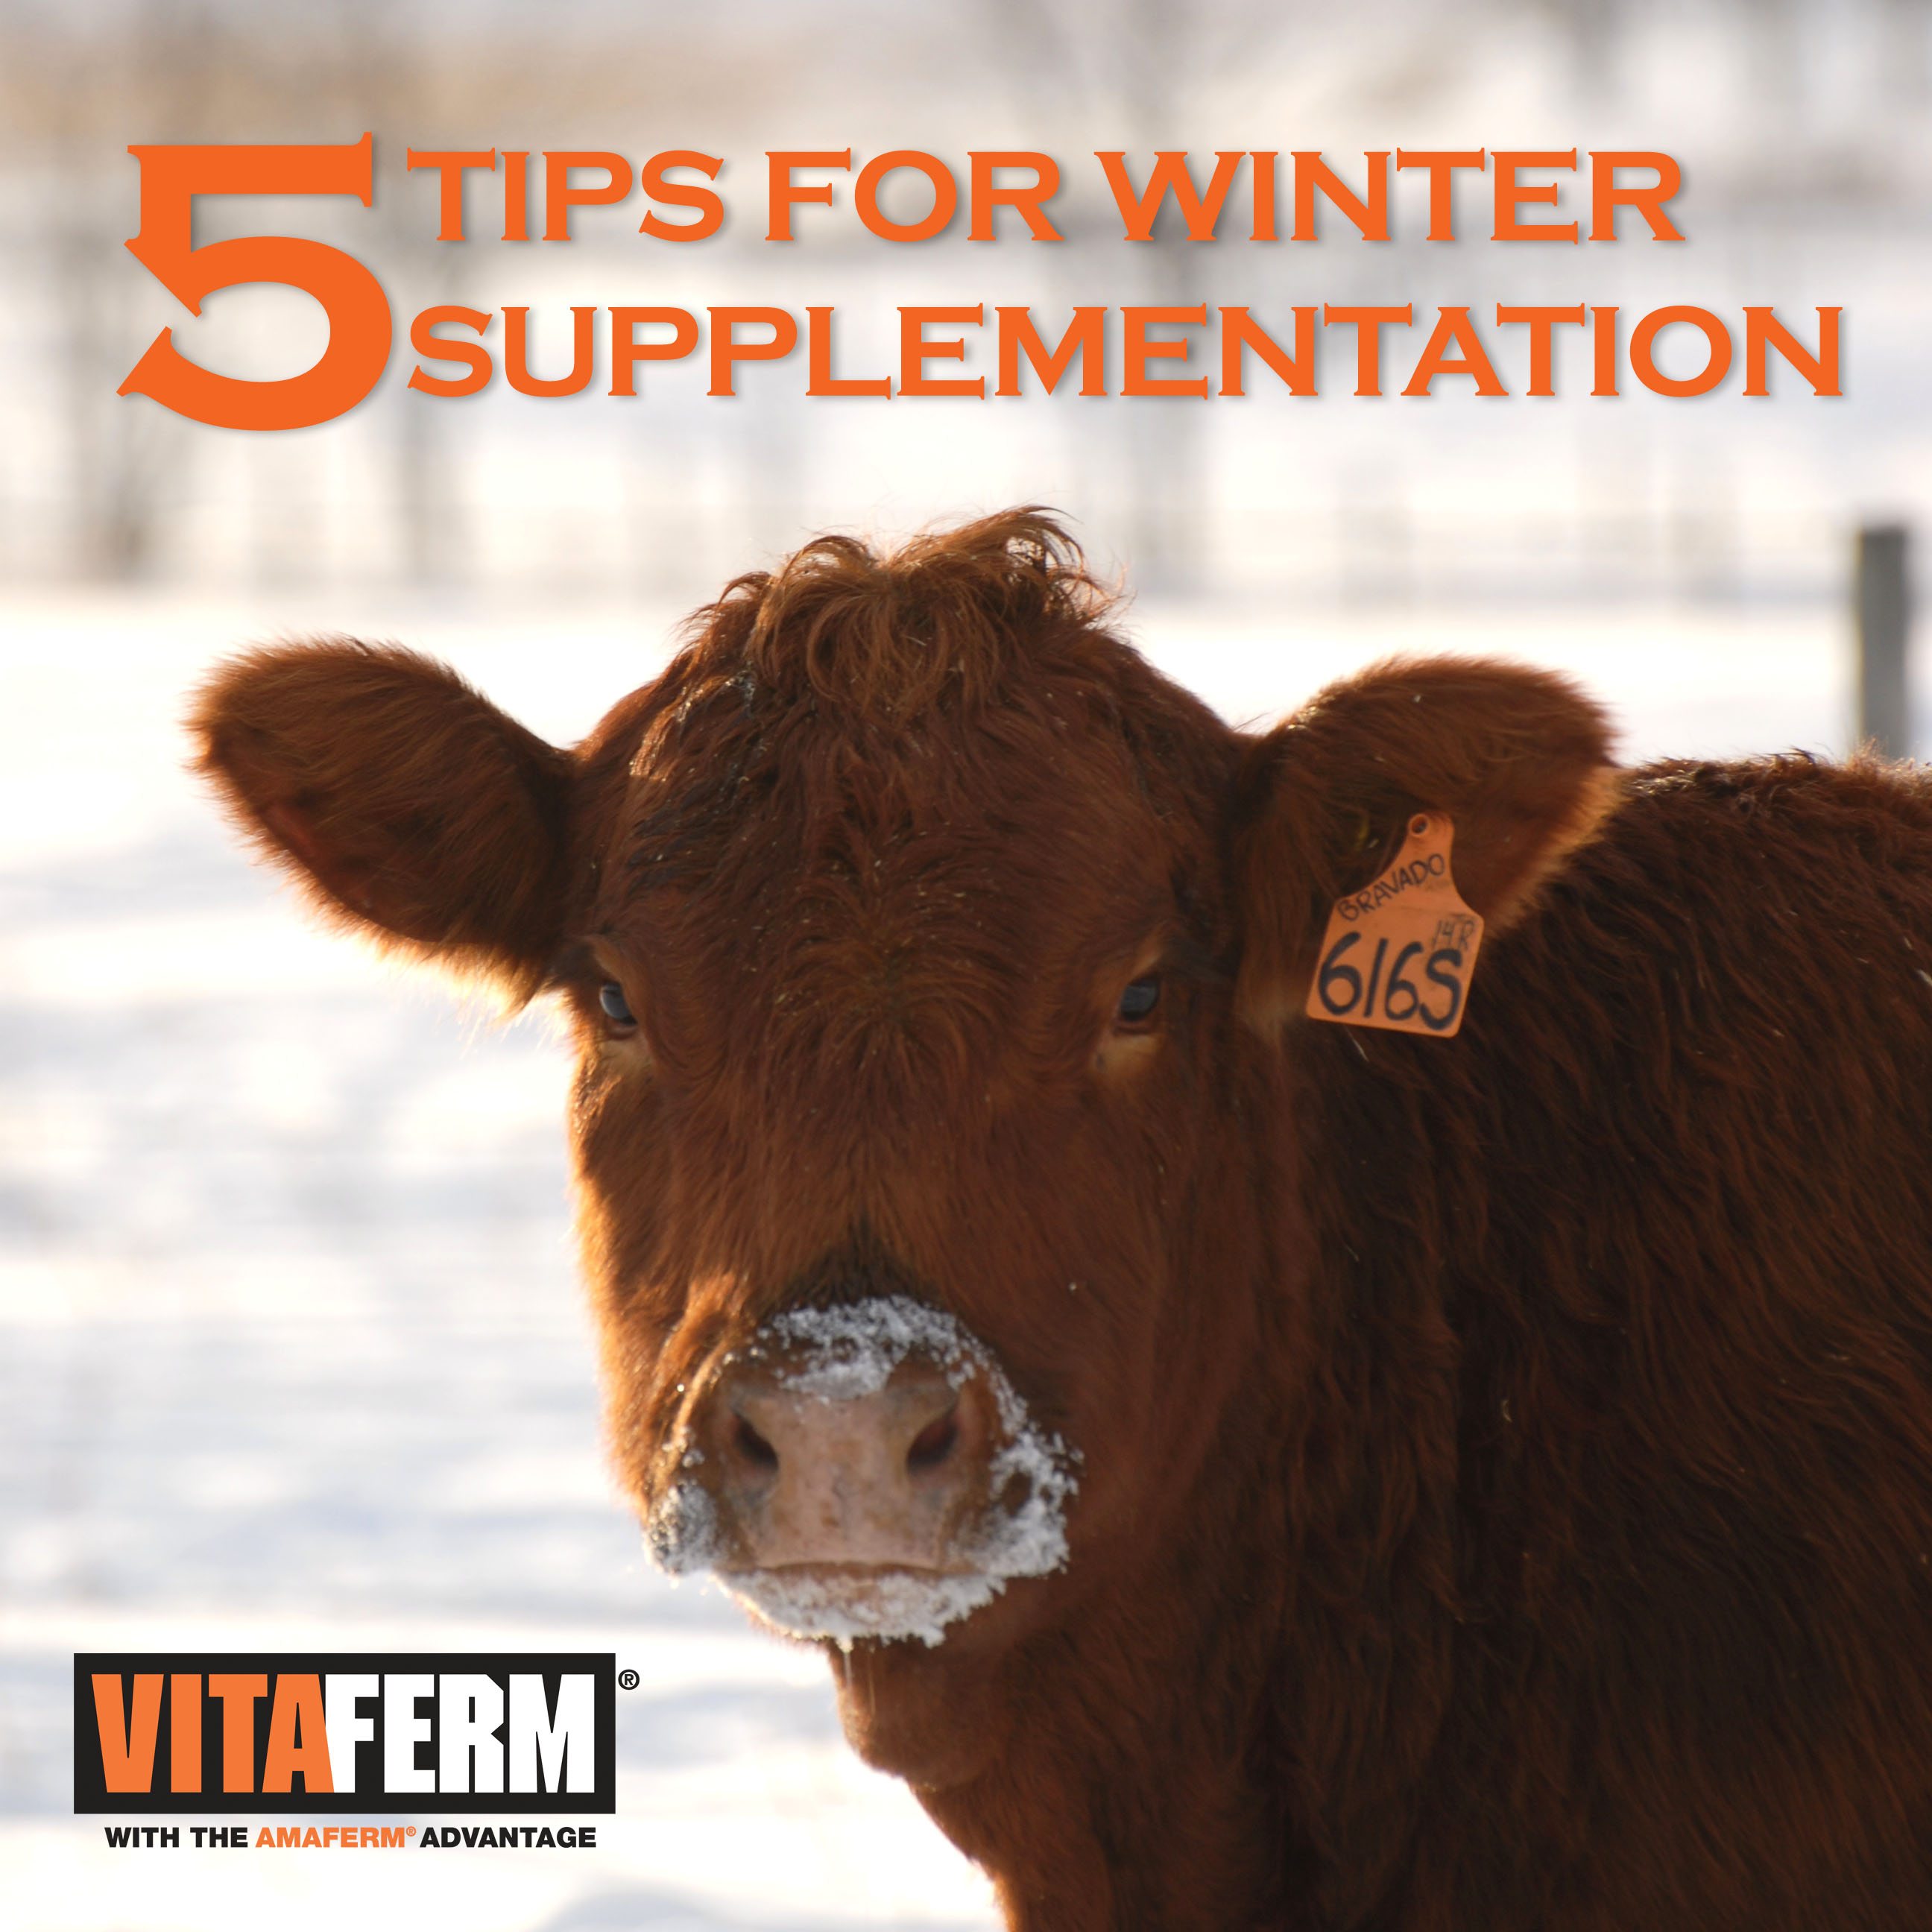 Tips for Winter Supplementation in Beef Cattle